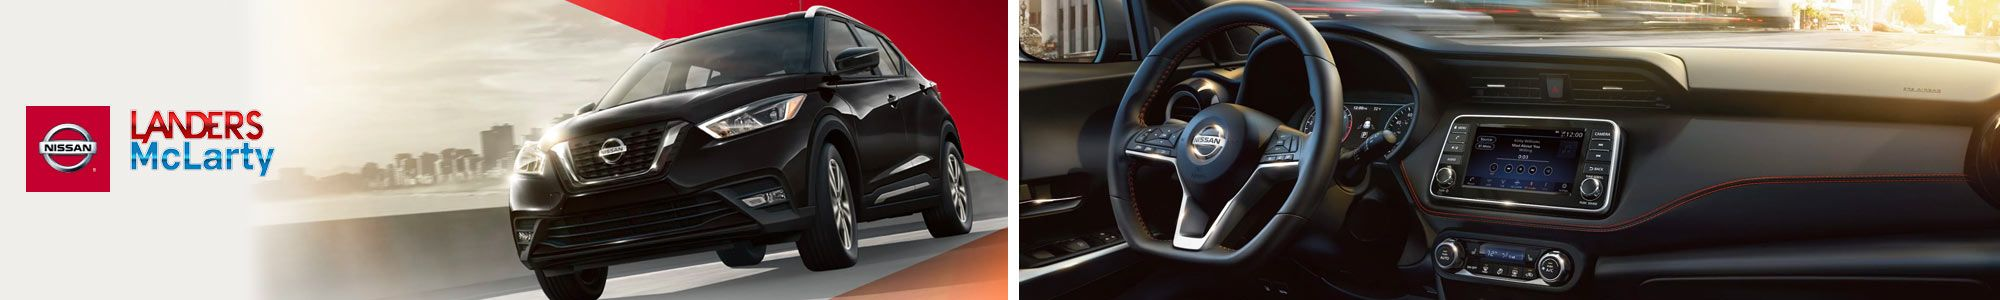 2019 Nissan Kicks at Landers McLarty Nissan